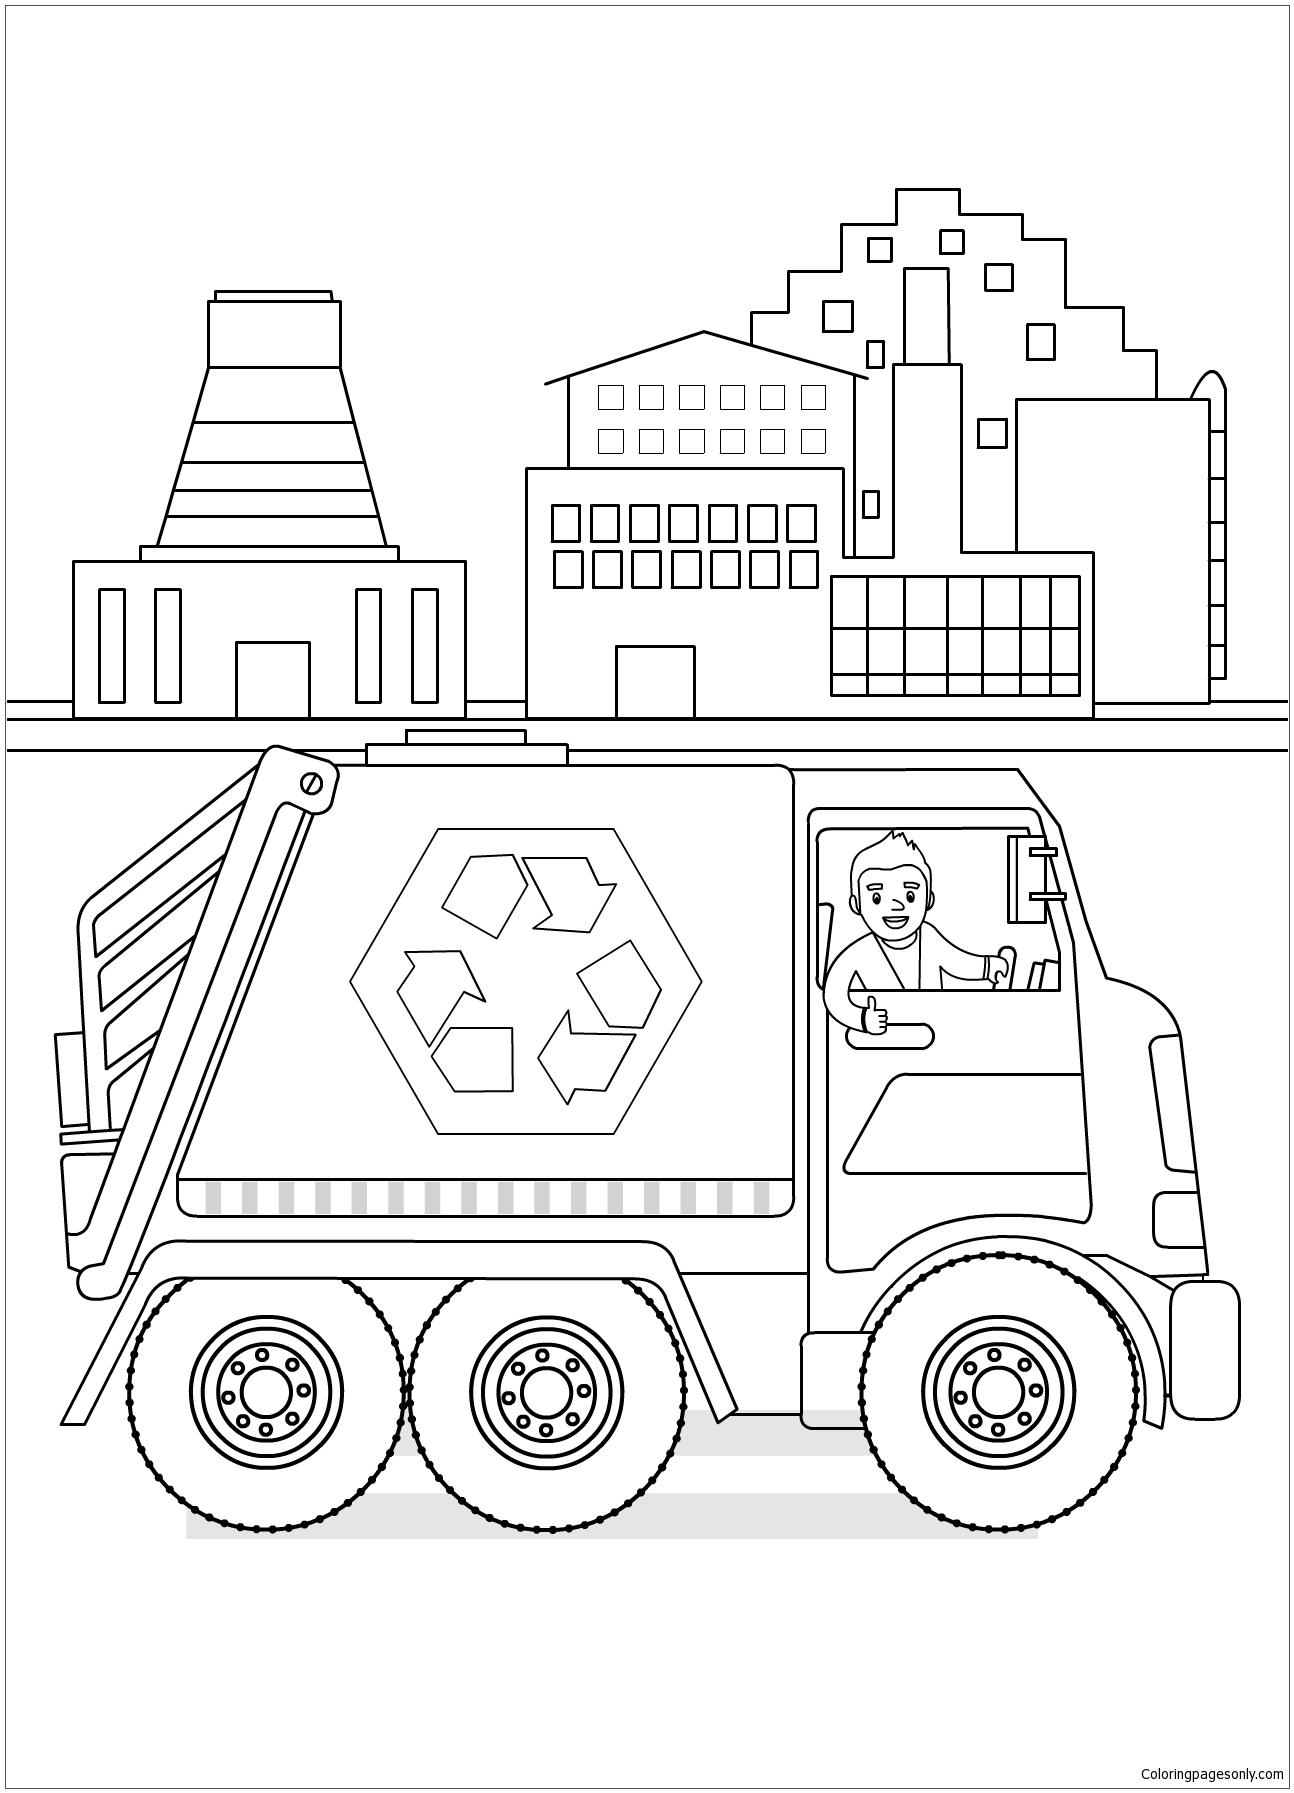 Recycling Diary Coloring Page